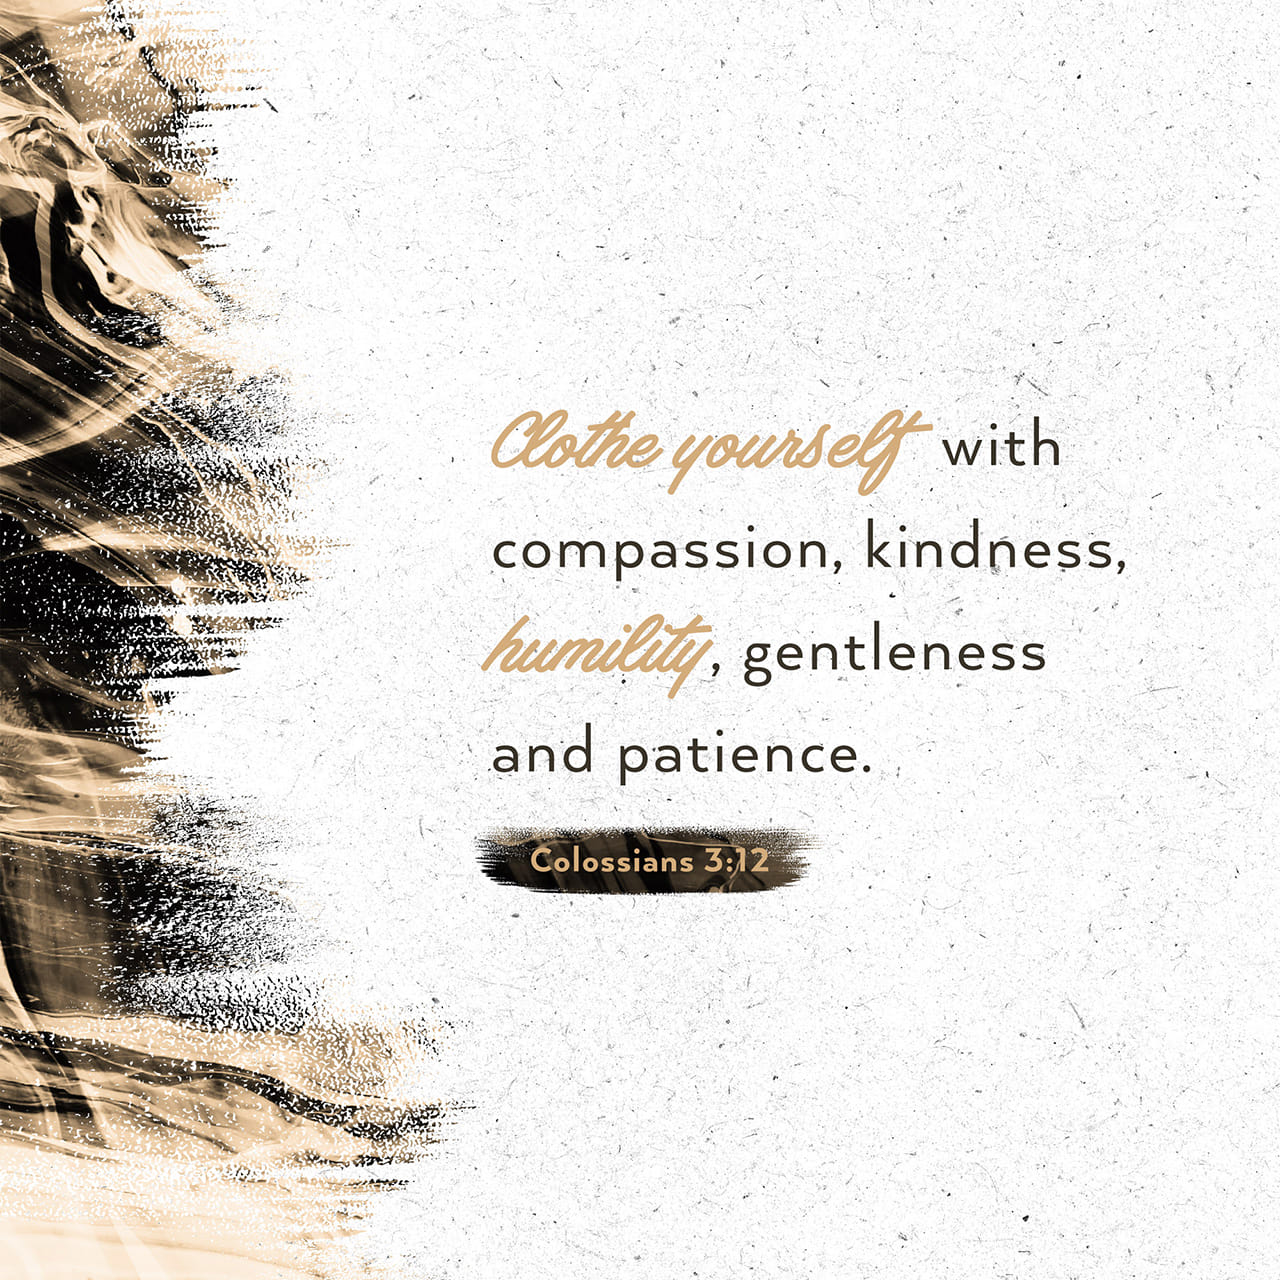 Colossians 3:12 Since God chose you to be the holy people he loves, you must clothe yourselves with tenderhearted mercy, kindness, humility, gentleness, and patience. | New Living Translation (NLT)